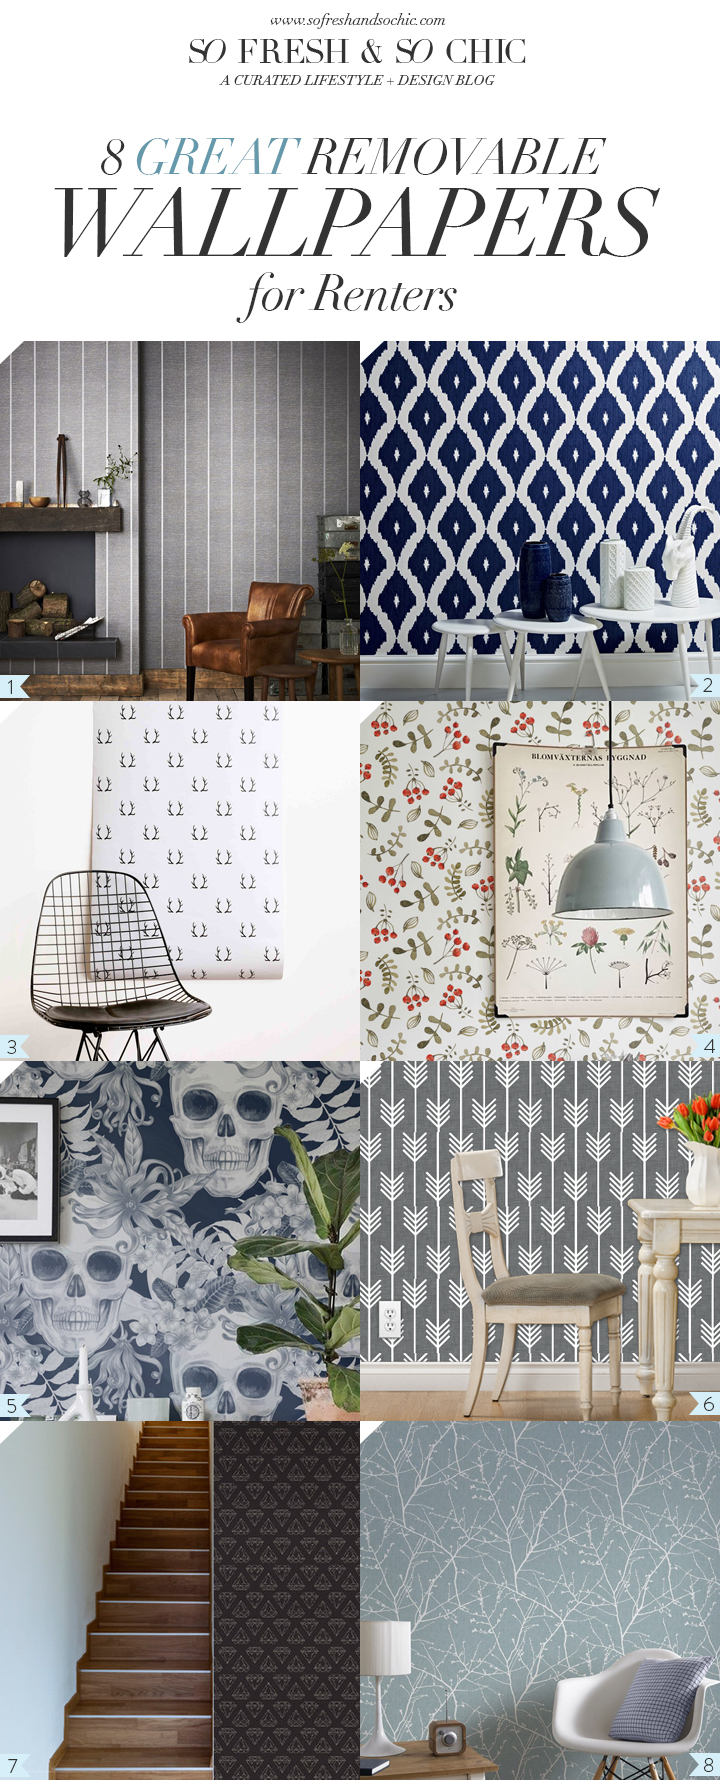 For the Home 8 Great Removable Wallpapers for Renters  So Fresh  So Chic